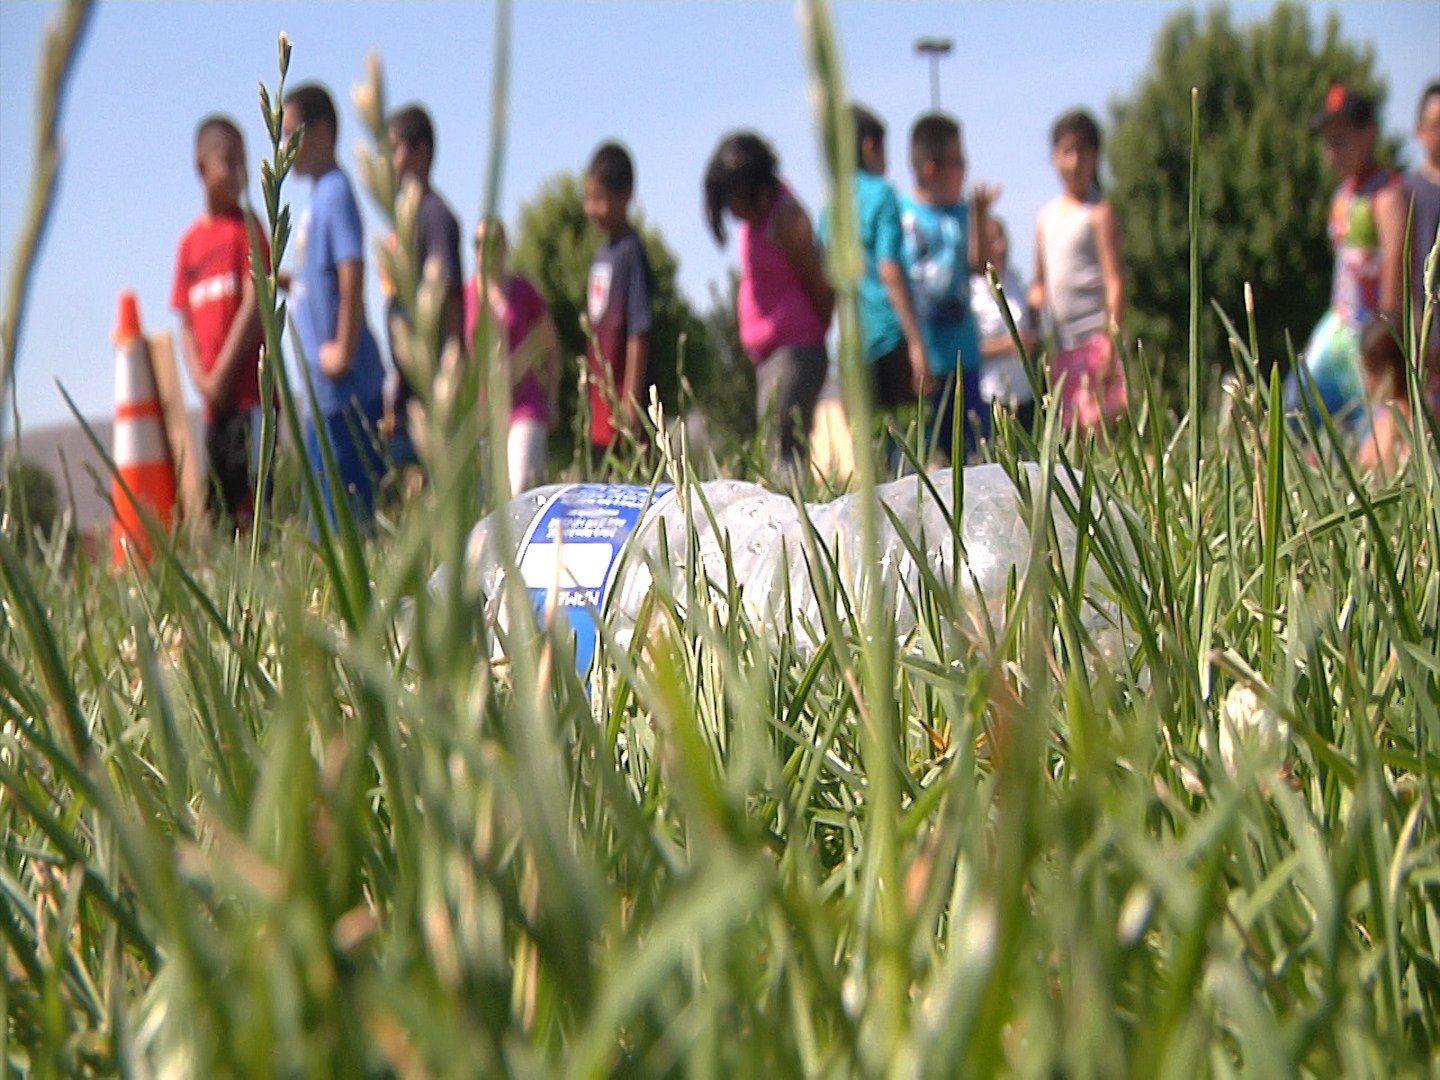 Martin Luther King elementary school incorporates water into their annual Field Day in order to beat the heat